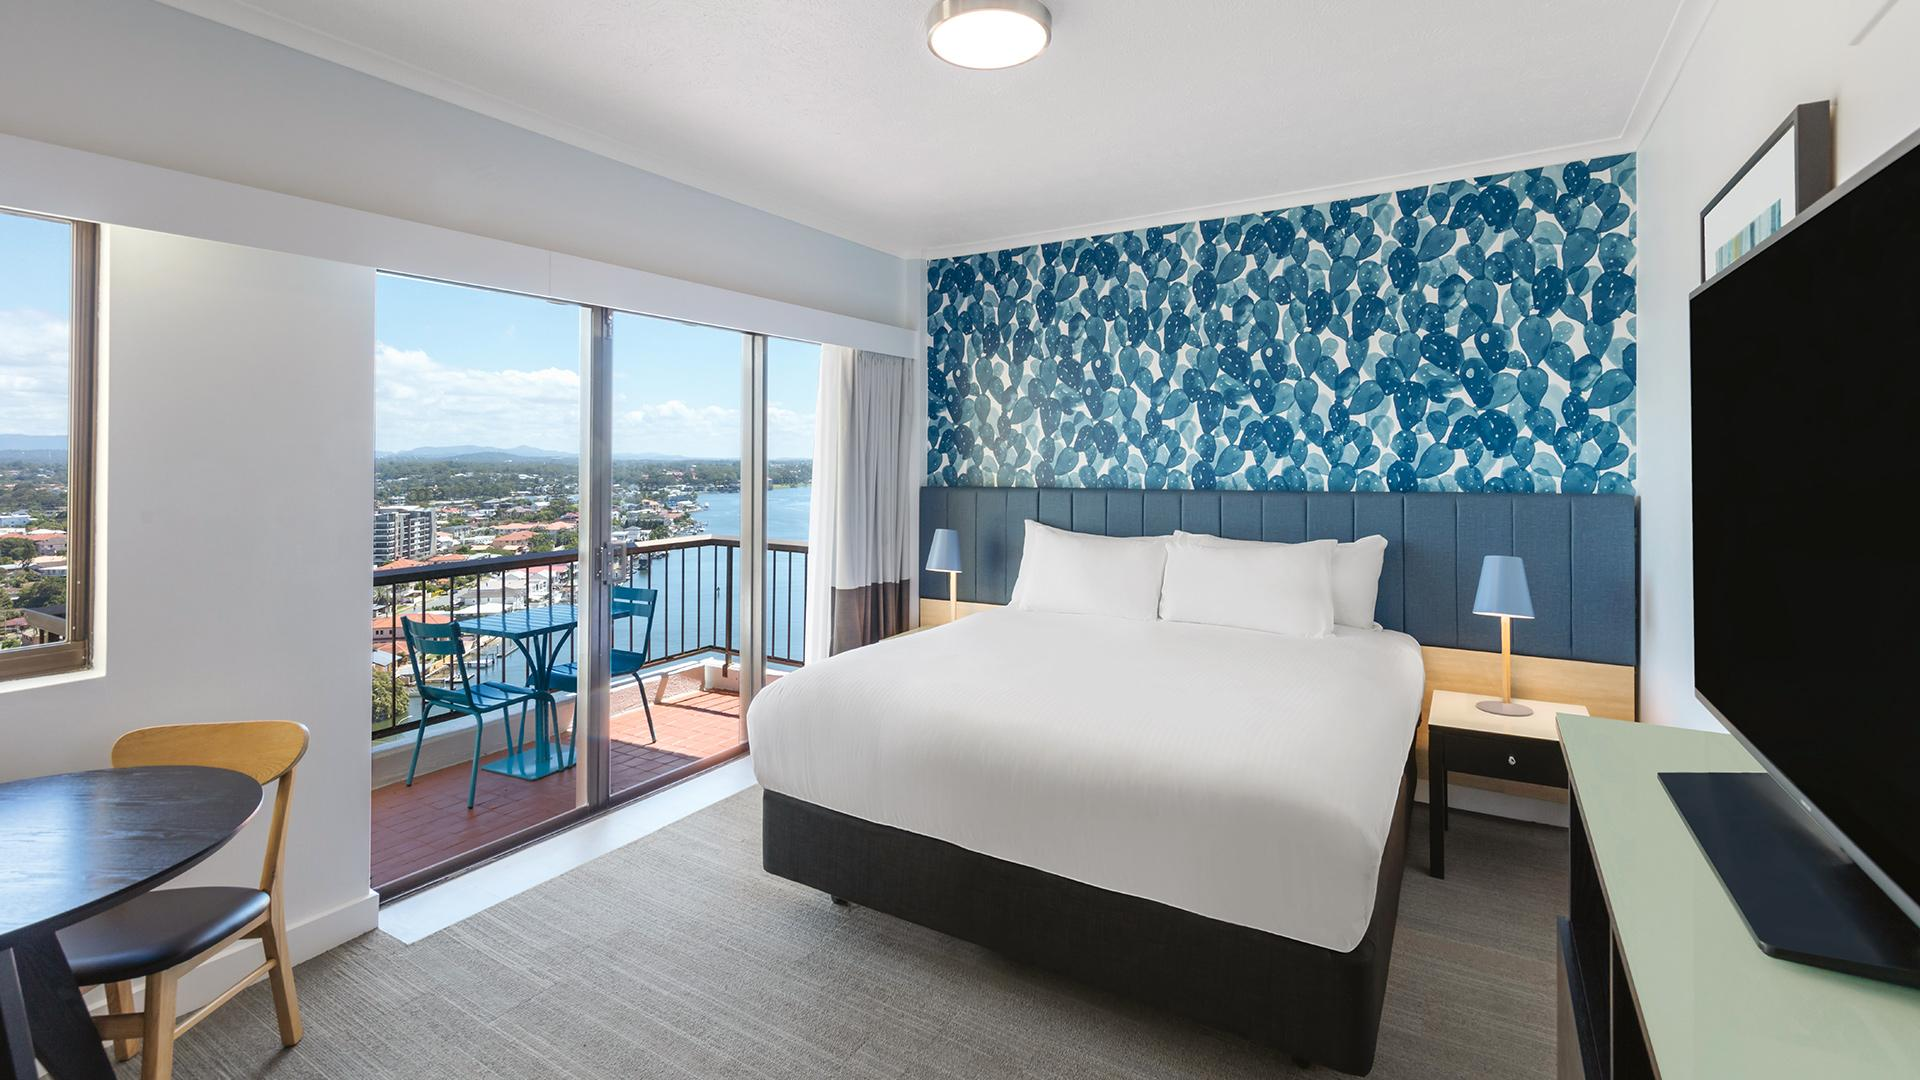 Riverview King Room image 1 at Vibe Hotel Gold Coast by City of Gold Coast, Queensland, Australia